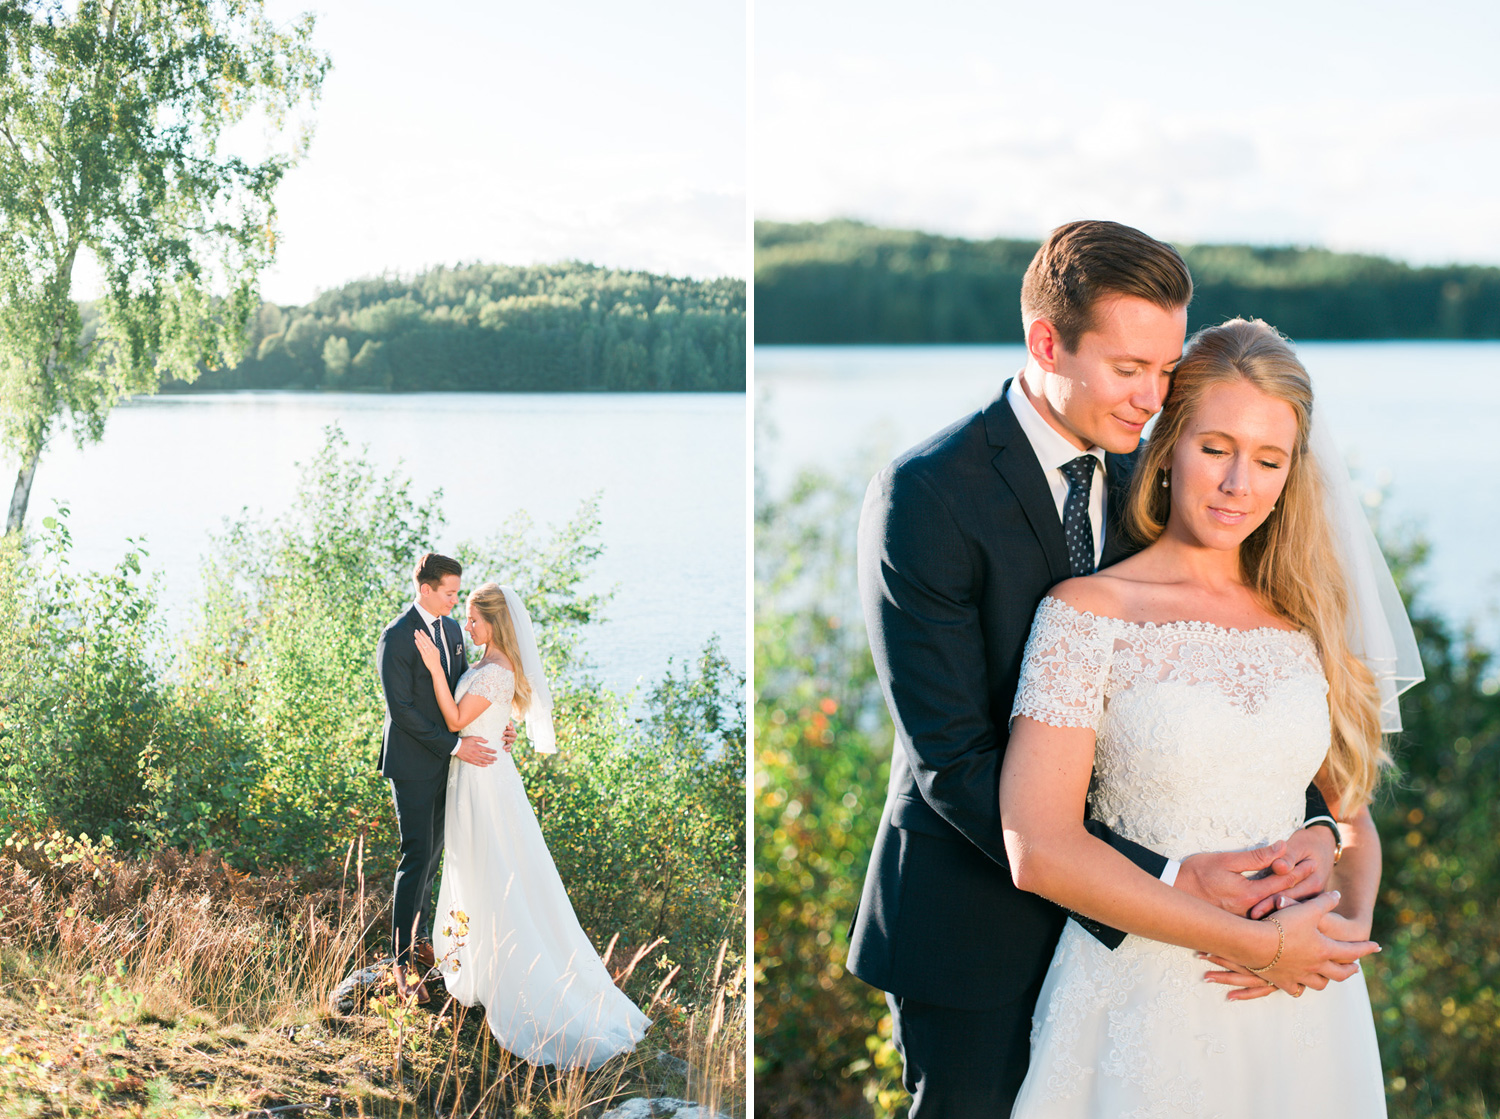 065-sweden-vidbynäs-wedding-photographer-bröllopsfotograf.jpg